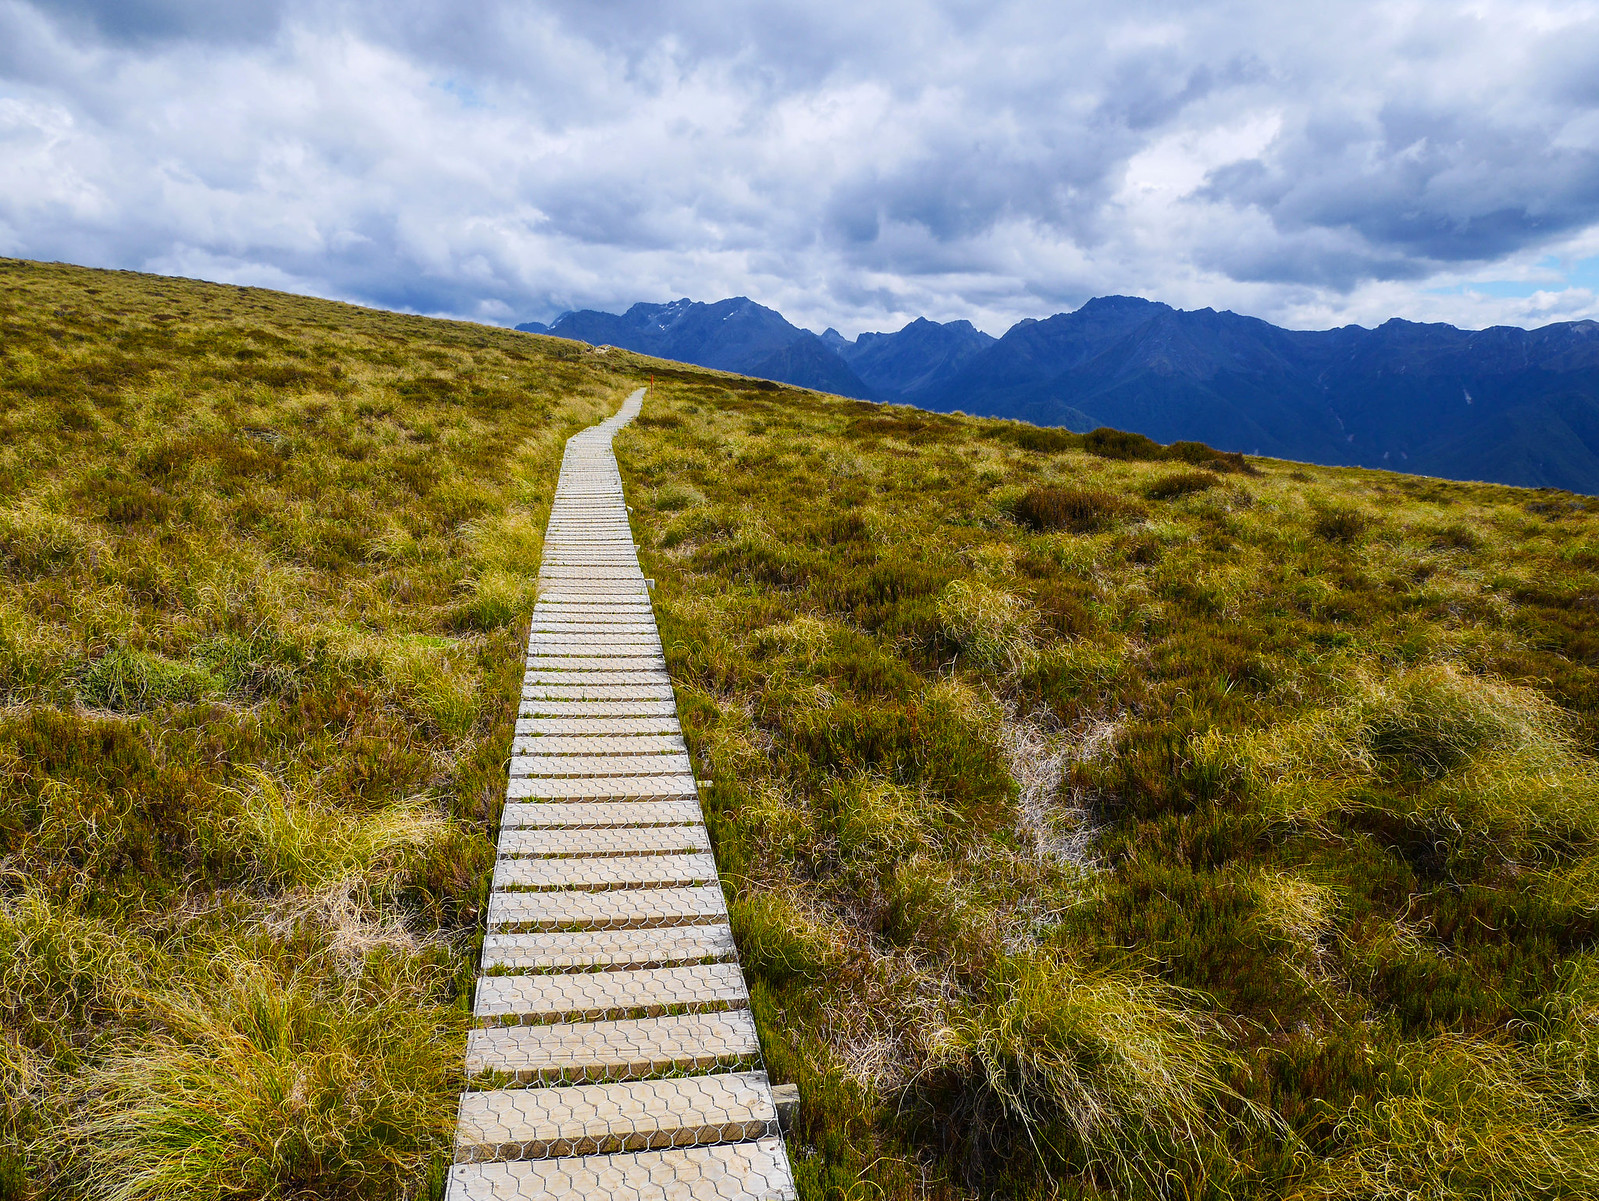 Boardwalk towards Luxmore Hut